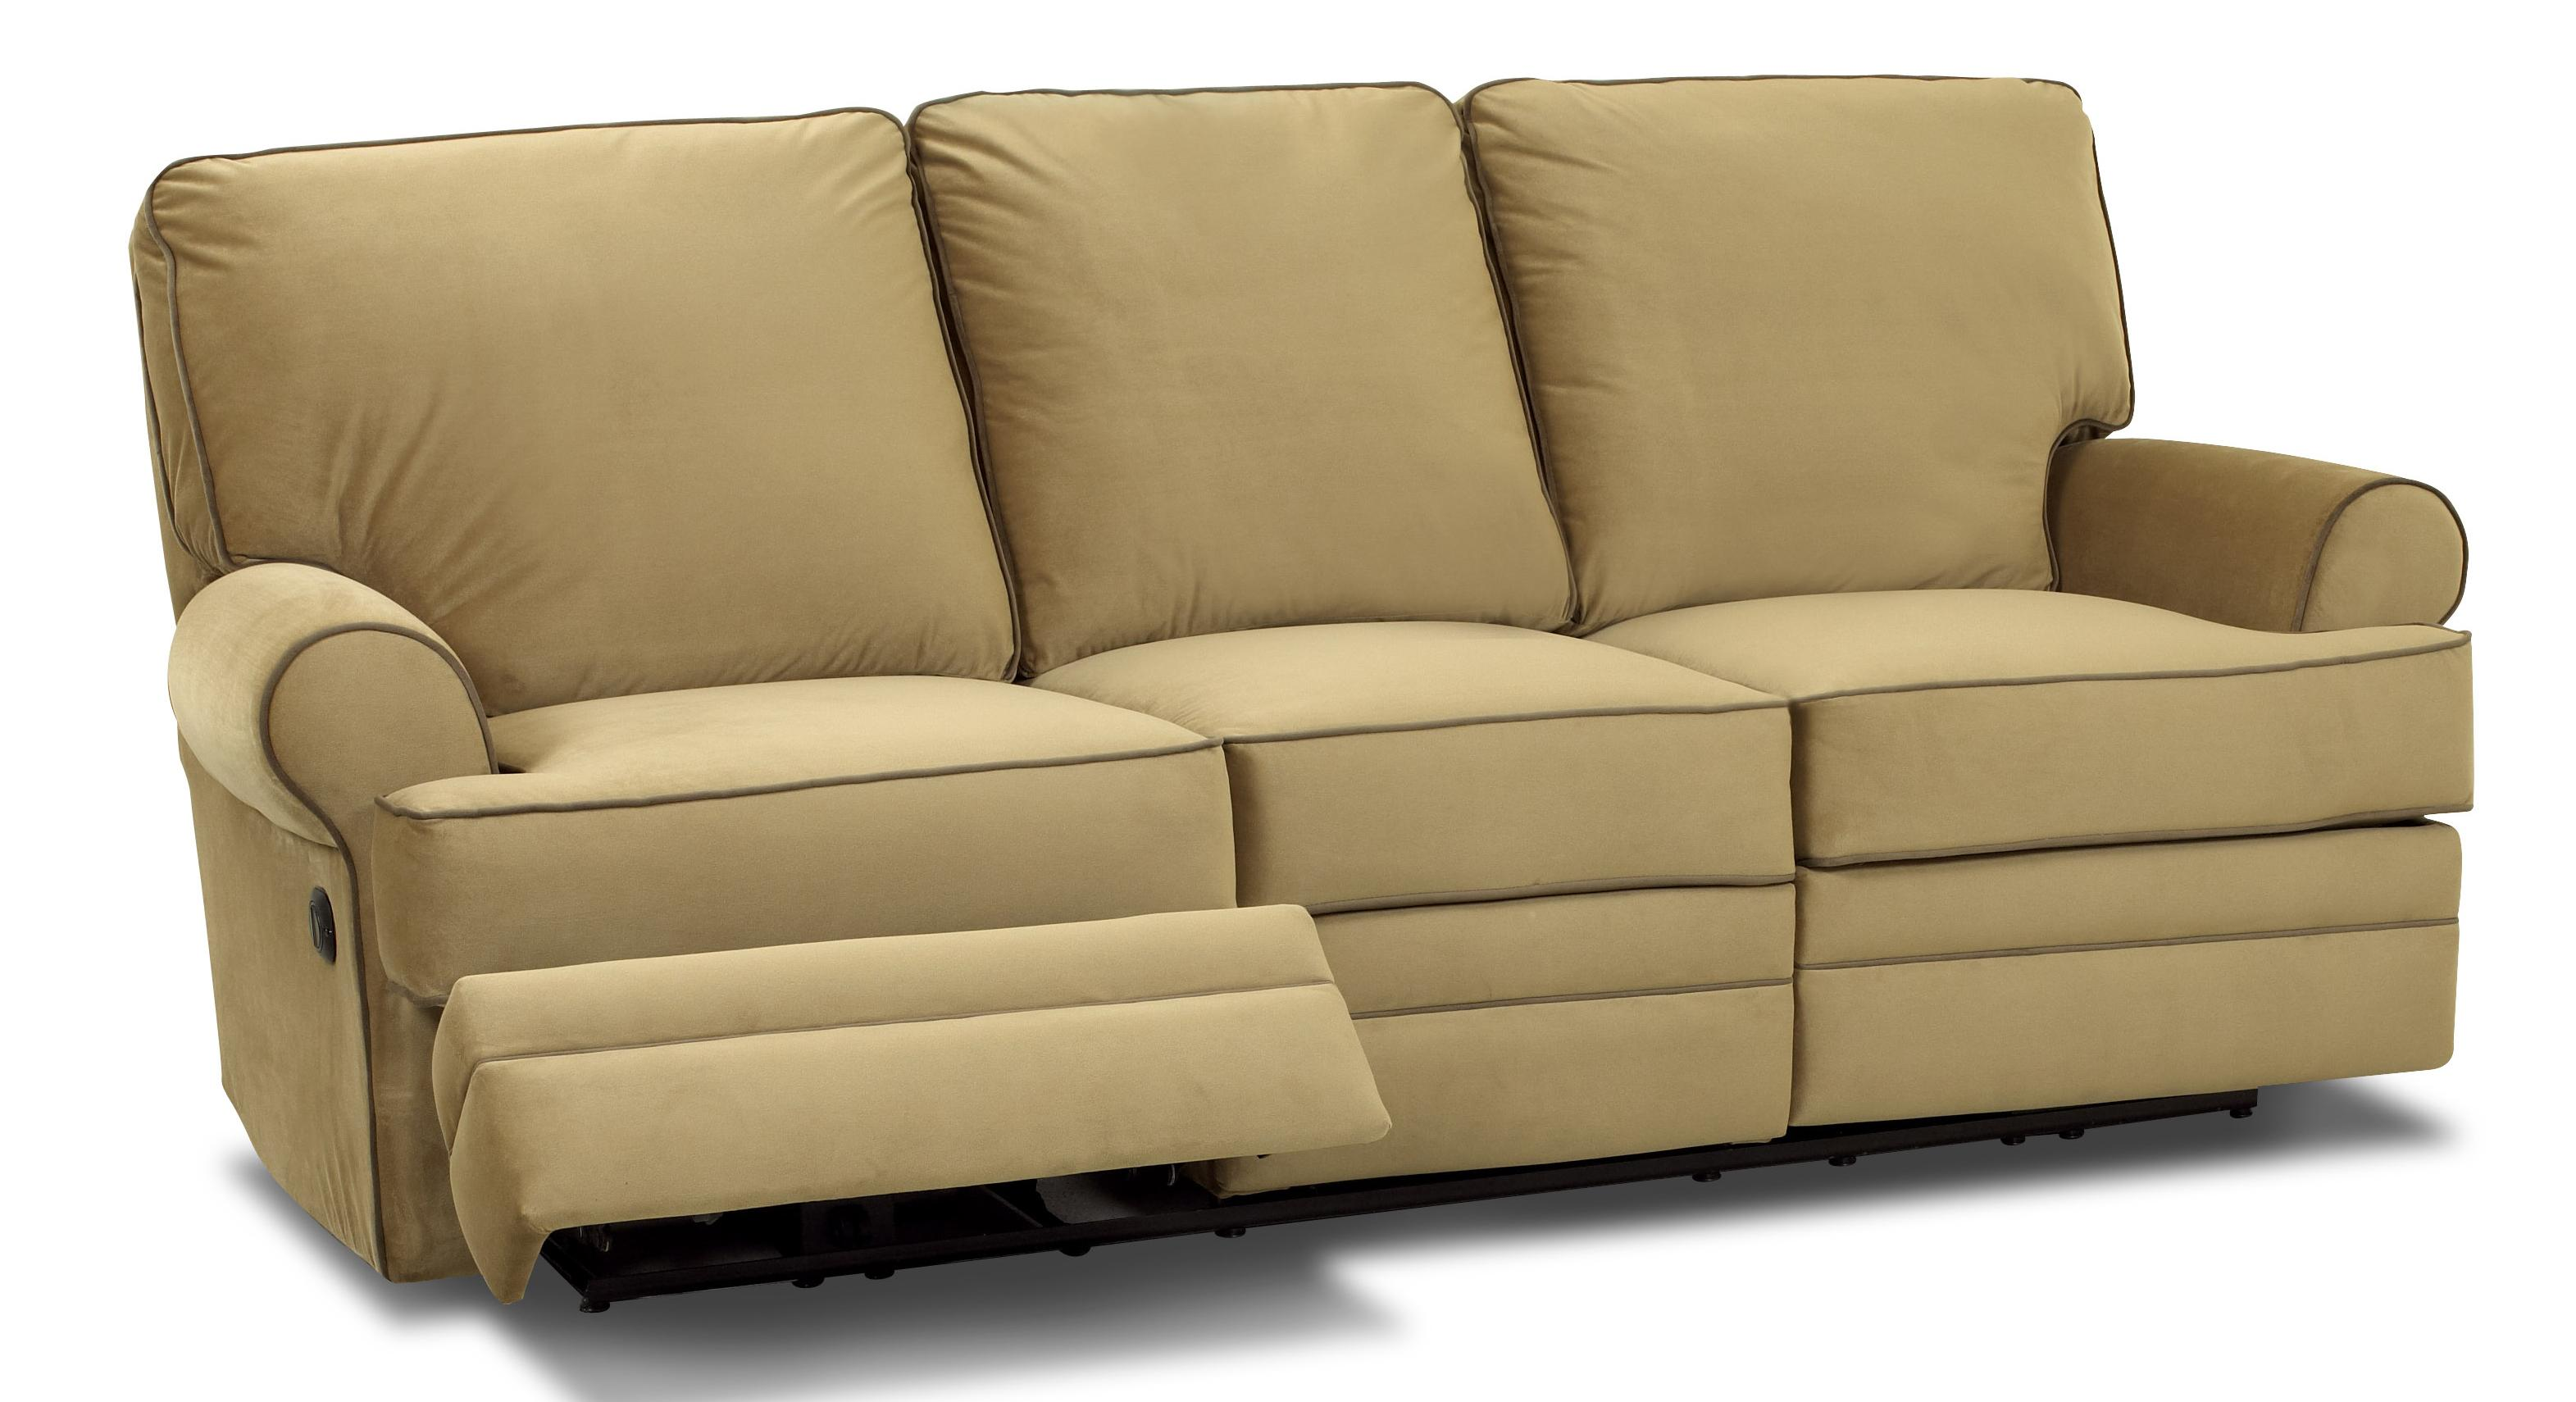 sofa reclinable 3 cuerpos ripley cheap sofas uk quick delivery klaussner belleview transitional dual reclining